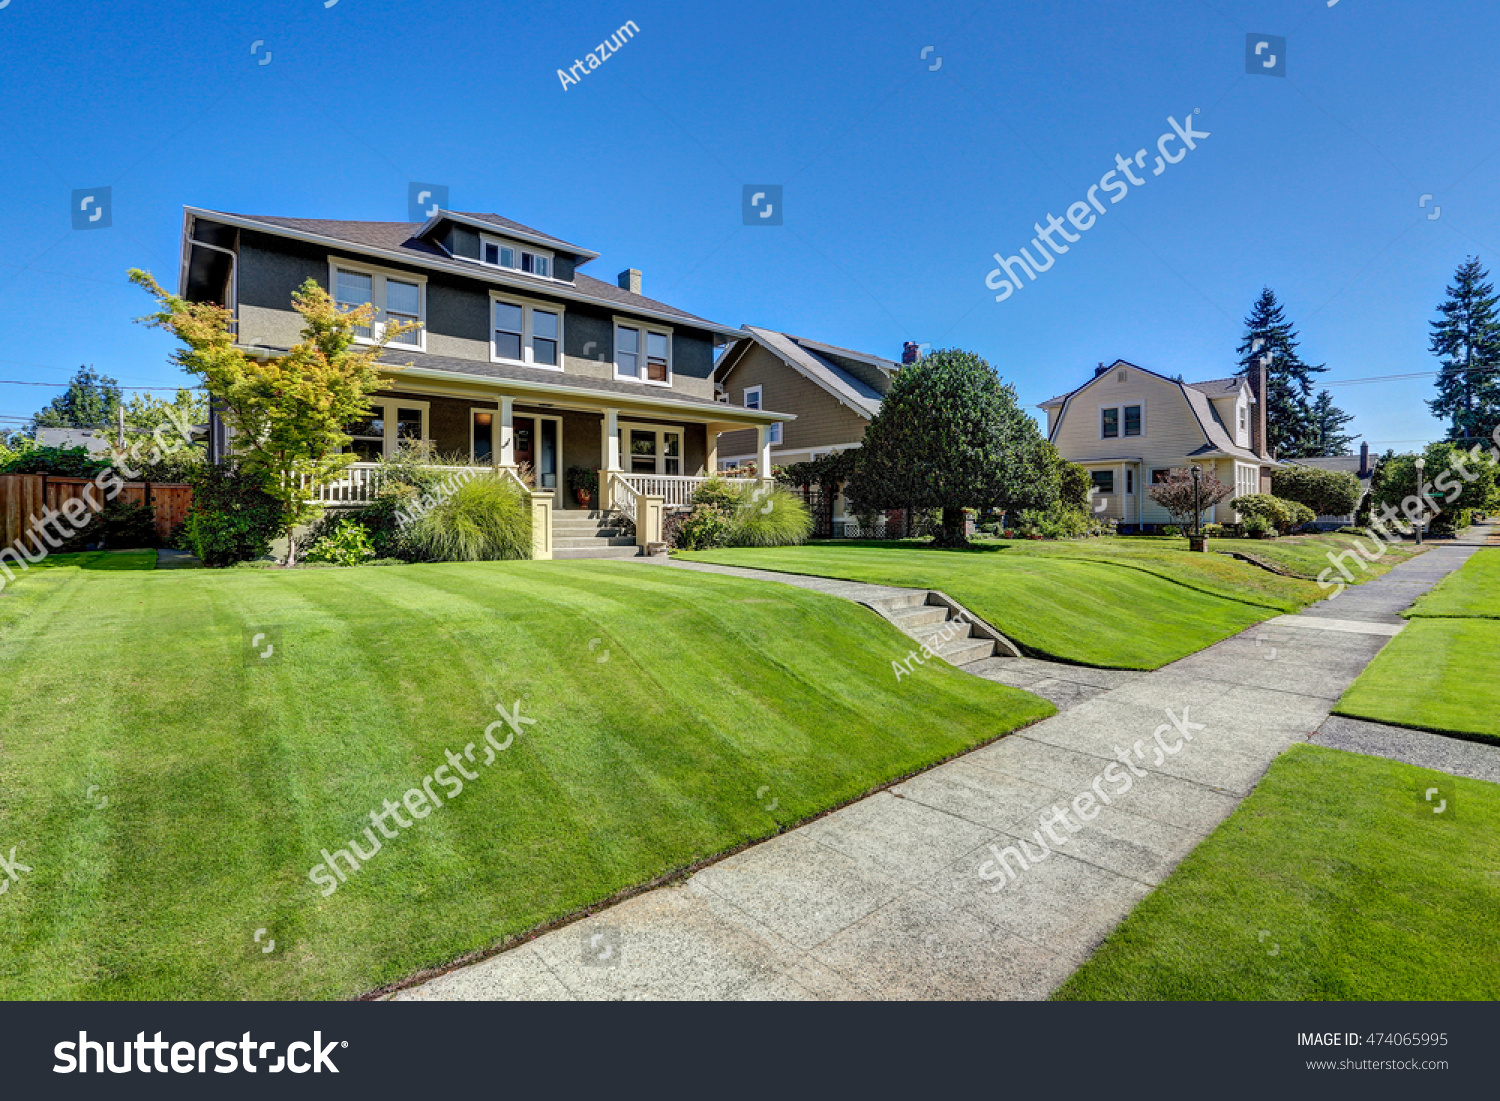 Wonderful American Craftsman Style Home - stock-photo-nice-curb-appeal-of-american-craftsman-style-house-column-porch-view-and-freshly-mowed-garden-lawn-474065995  2018_615347.jpg